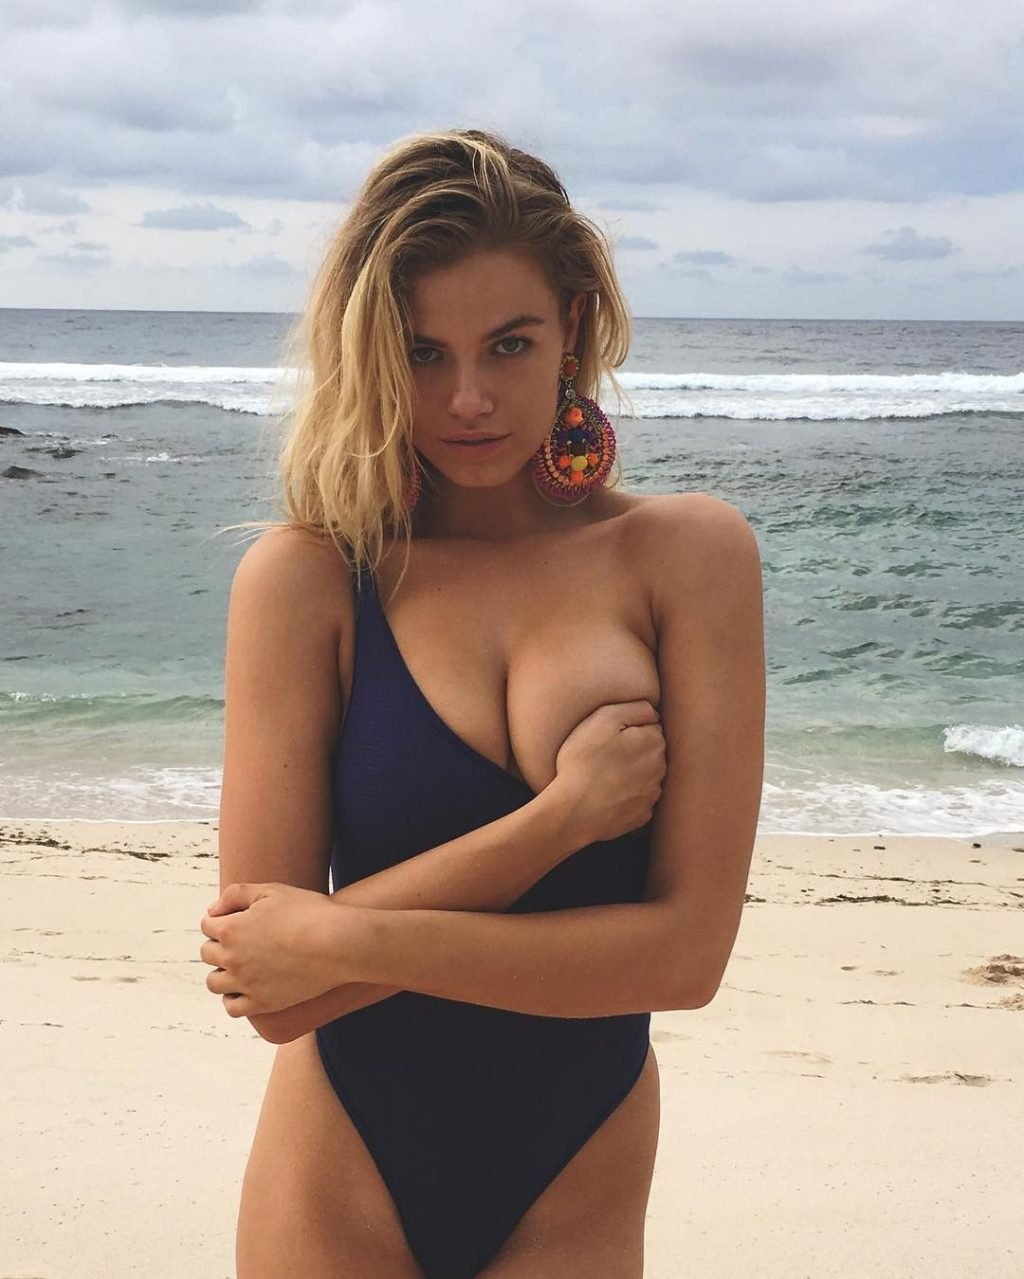 Sports Illustrated 2016 Swimsuit Cover Model - Hailey Clauson